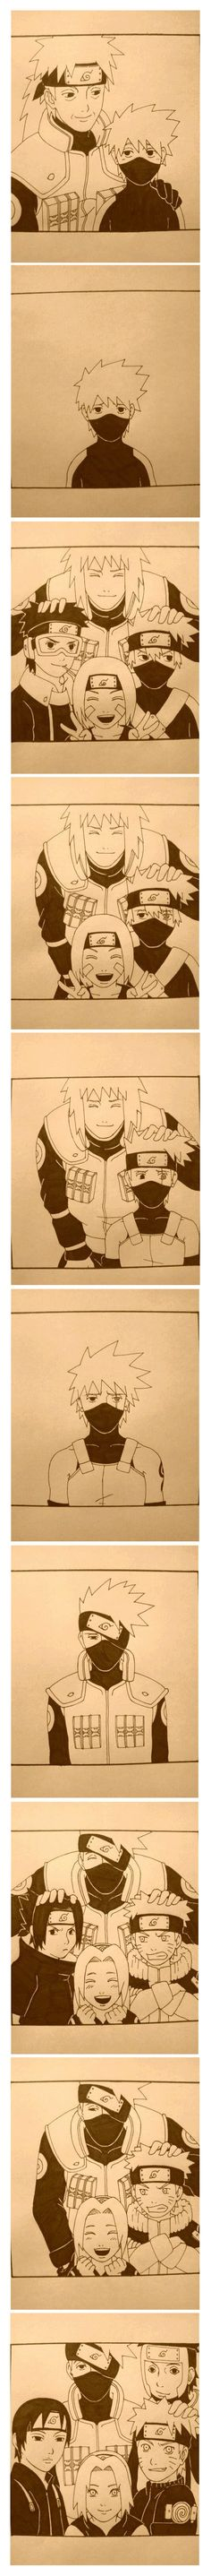 Kakashi Story, I feel so sad for him :( :( :( We are here for you Kakashi <3 <3 T^T